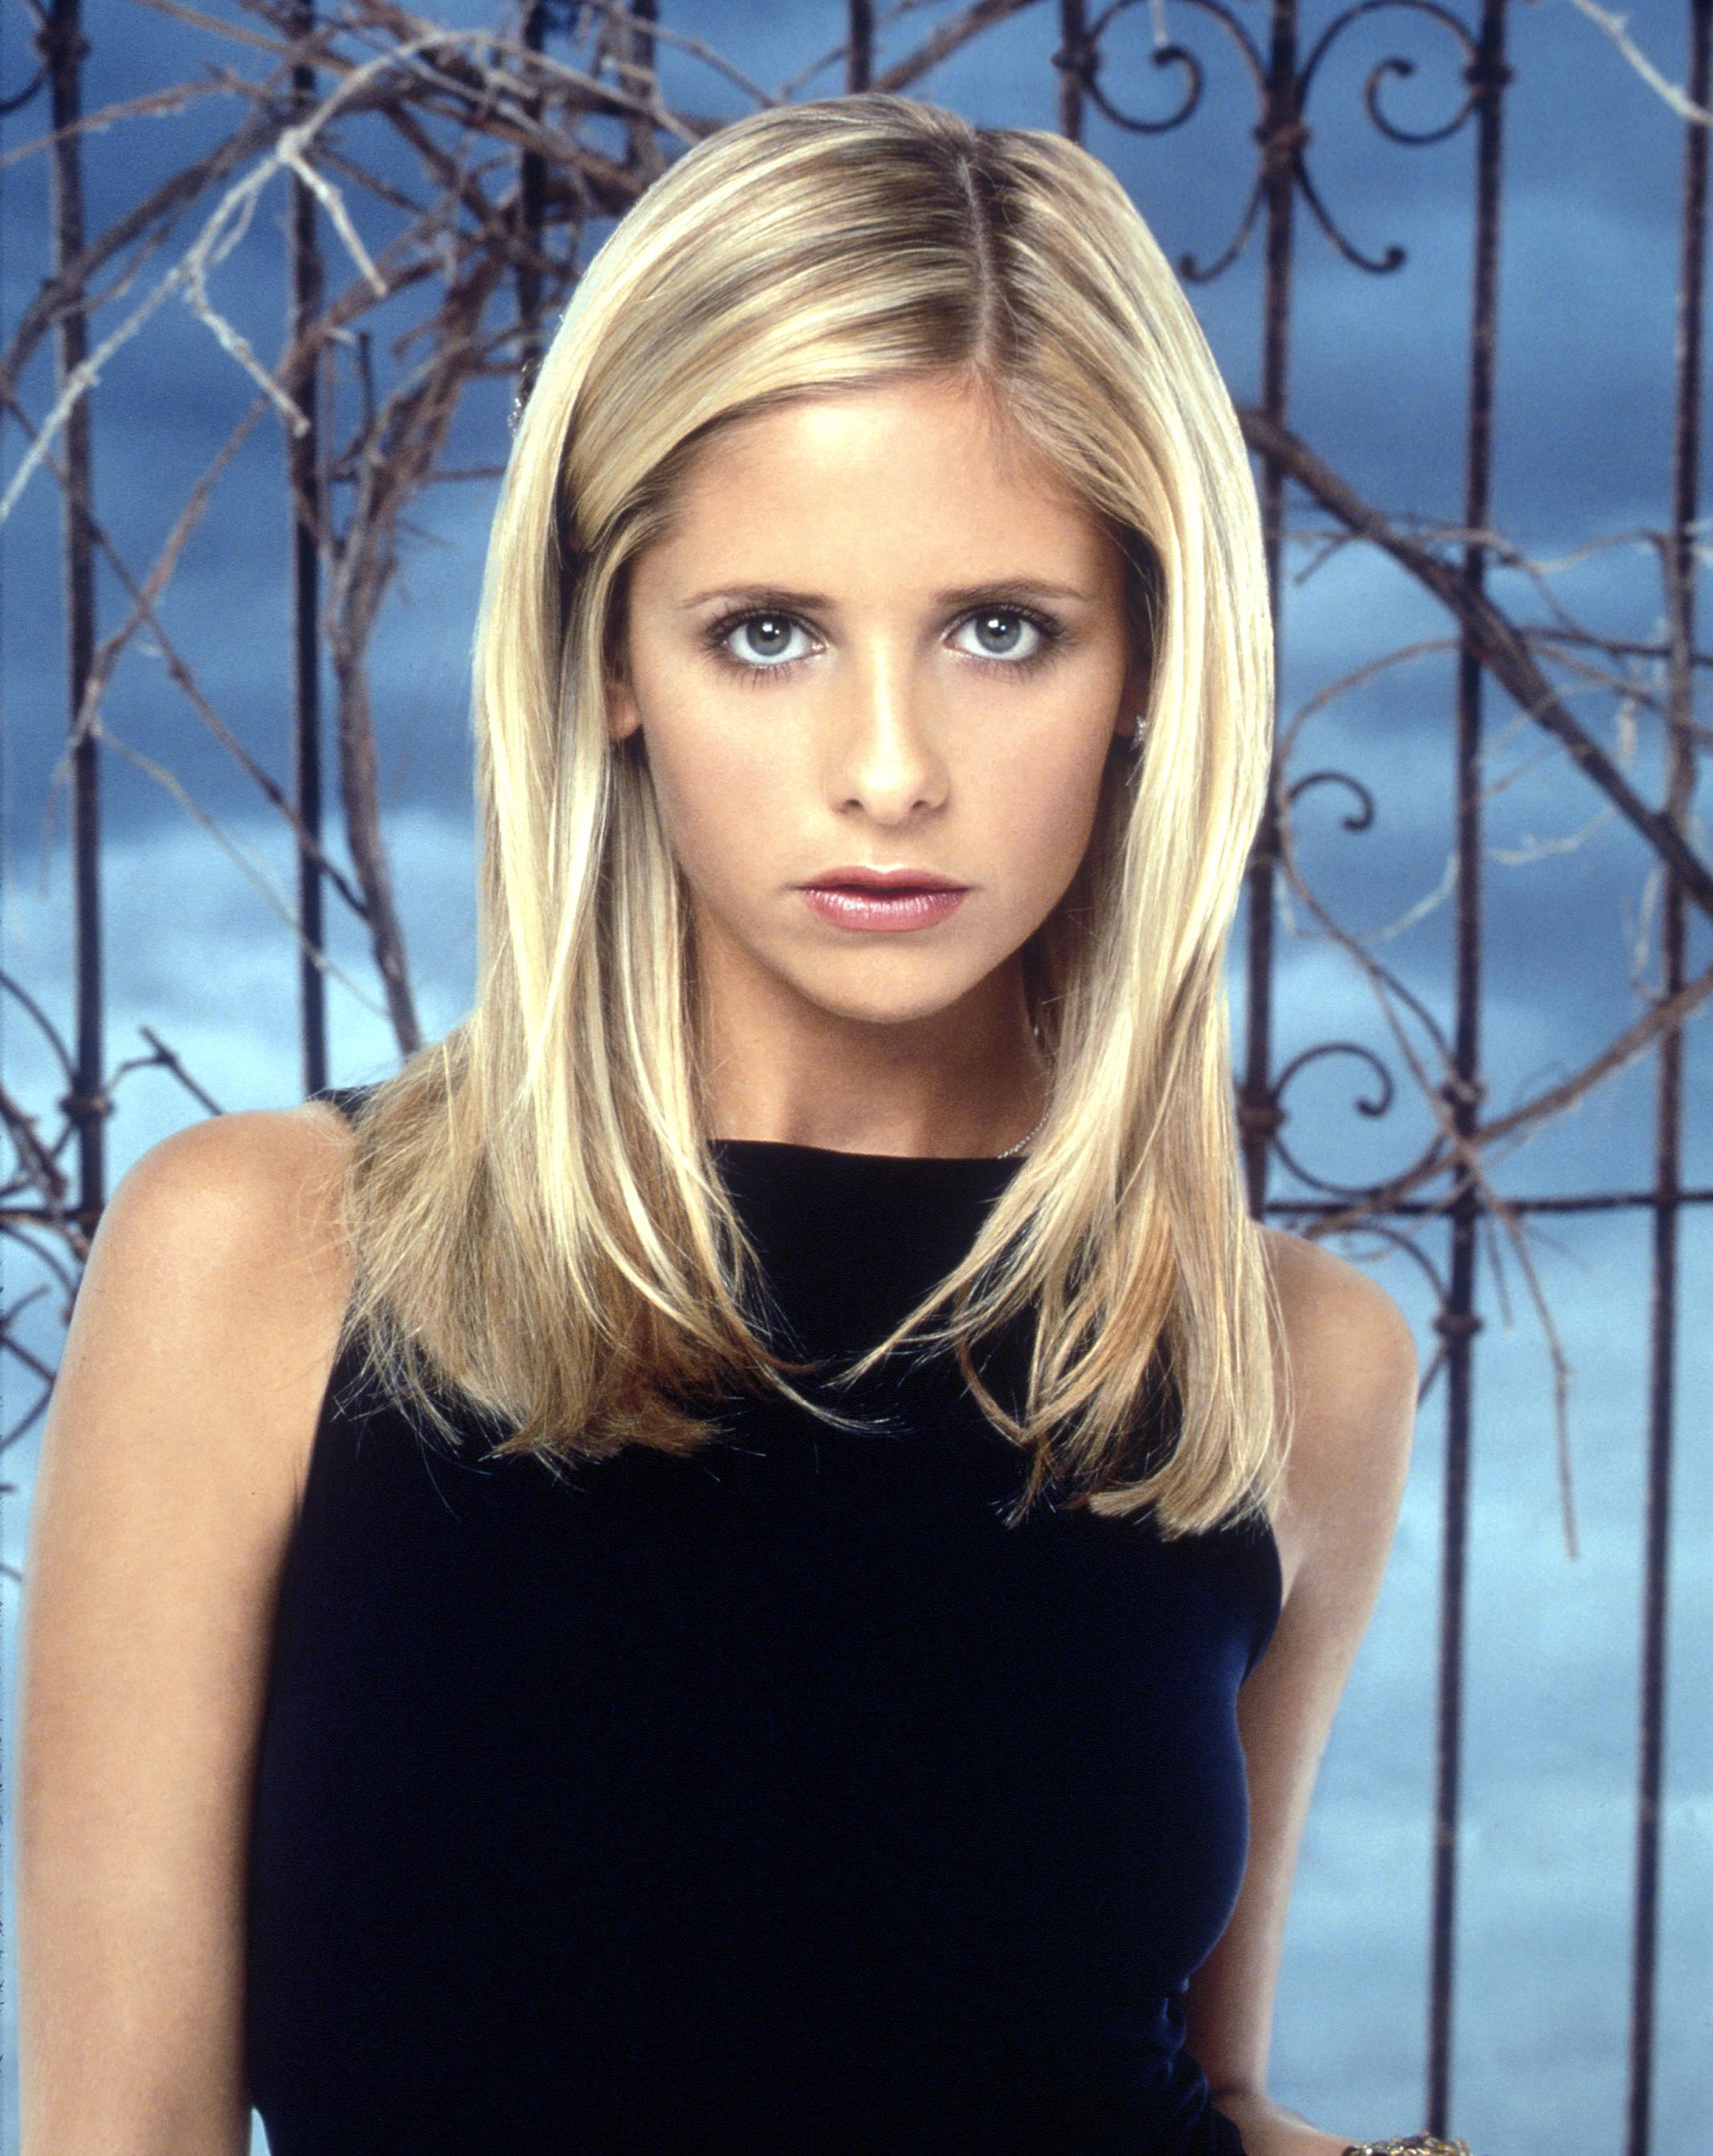 Sarah Michelle Gellar Stars In  Buffy The Vampire Slayer.